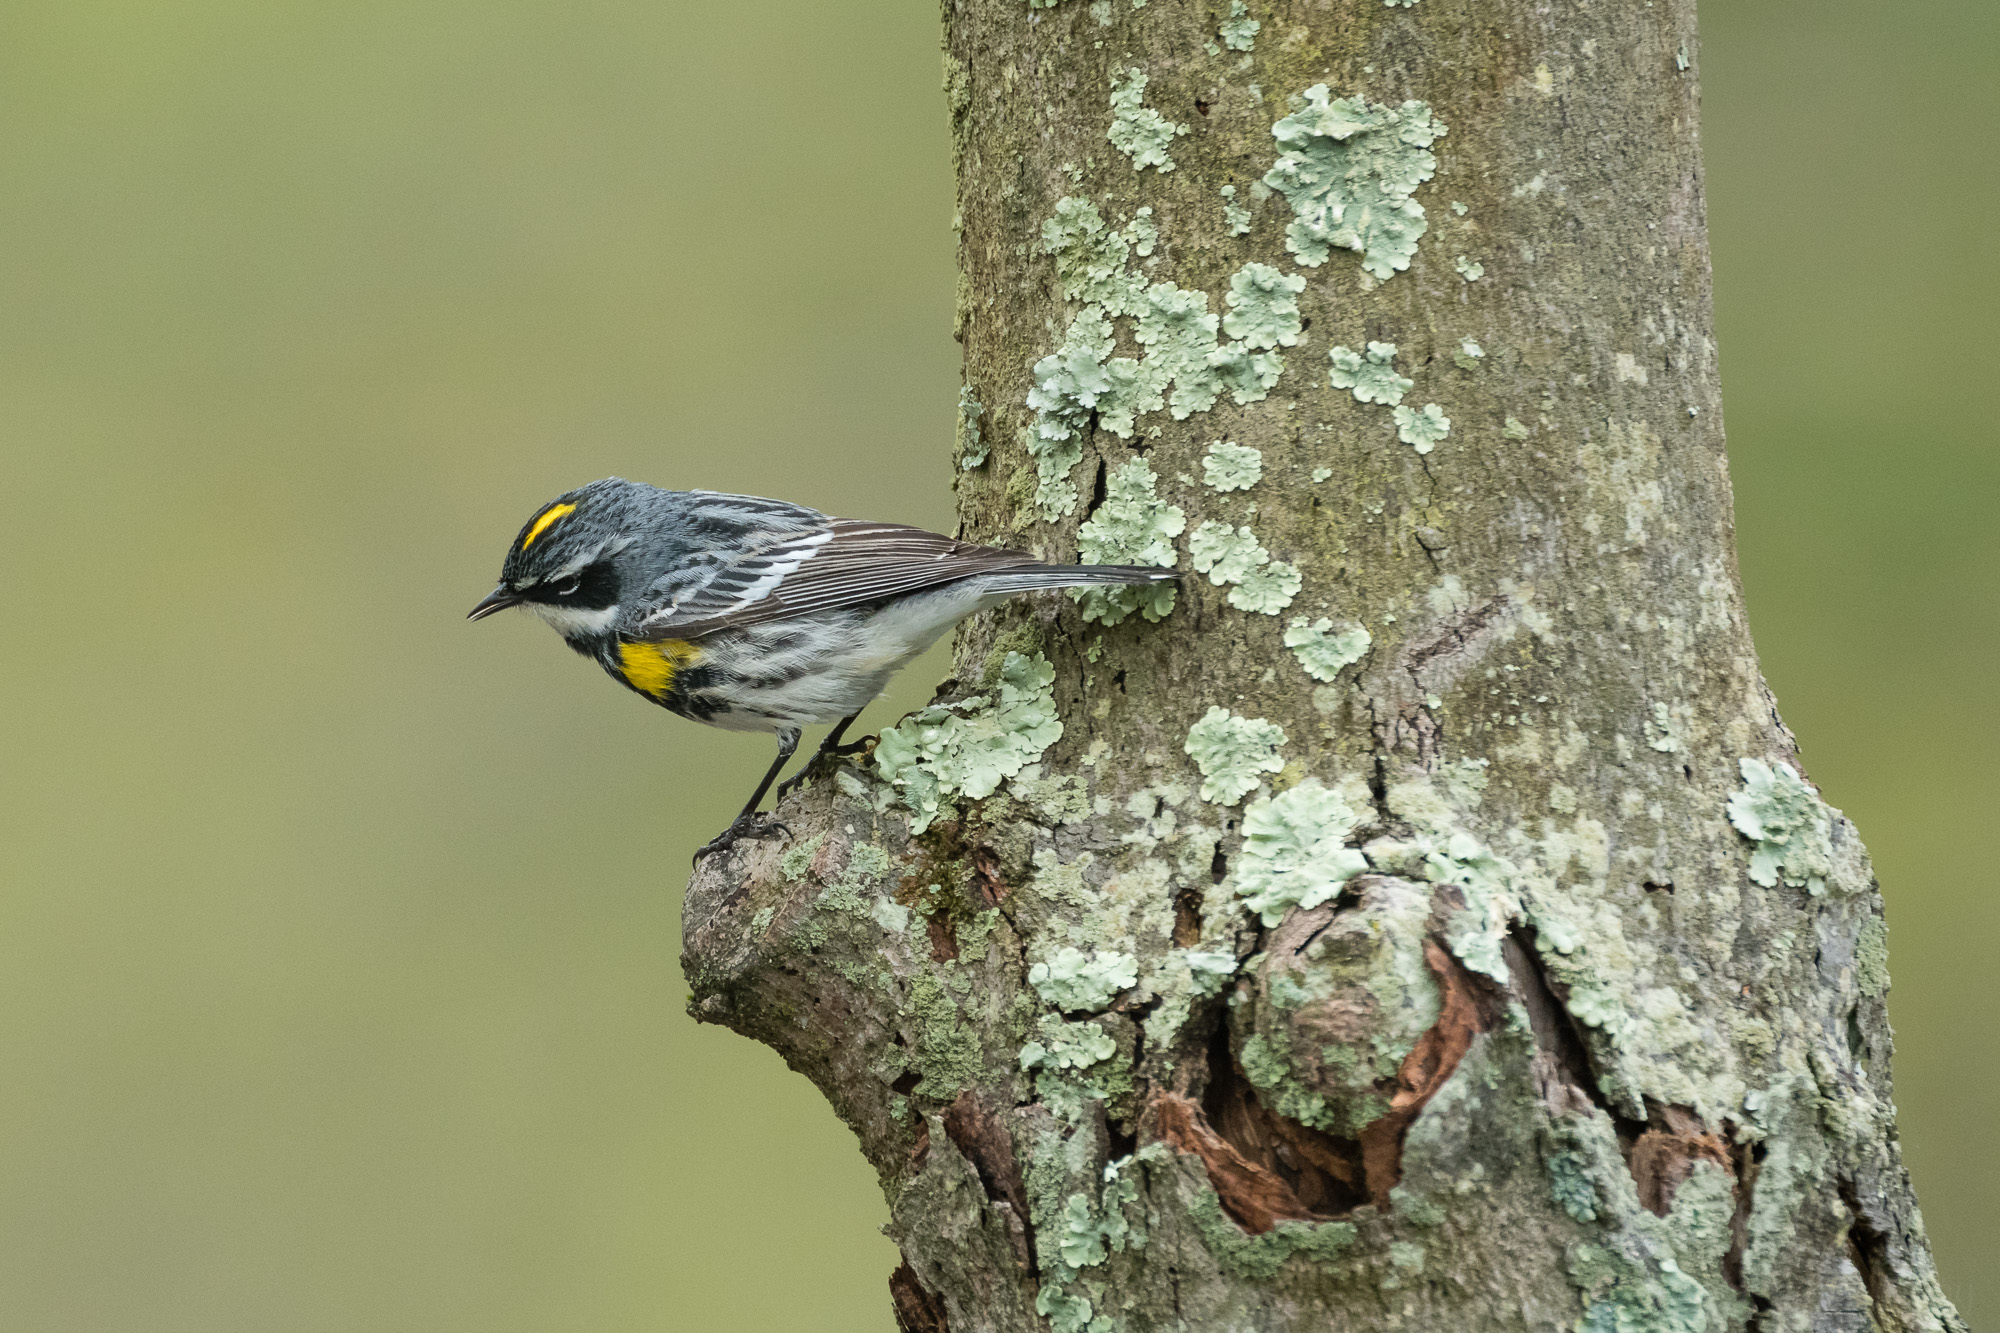 Yellow-rumped (Myrtle) Warbler perched on a tree, head looking down towards the ground.